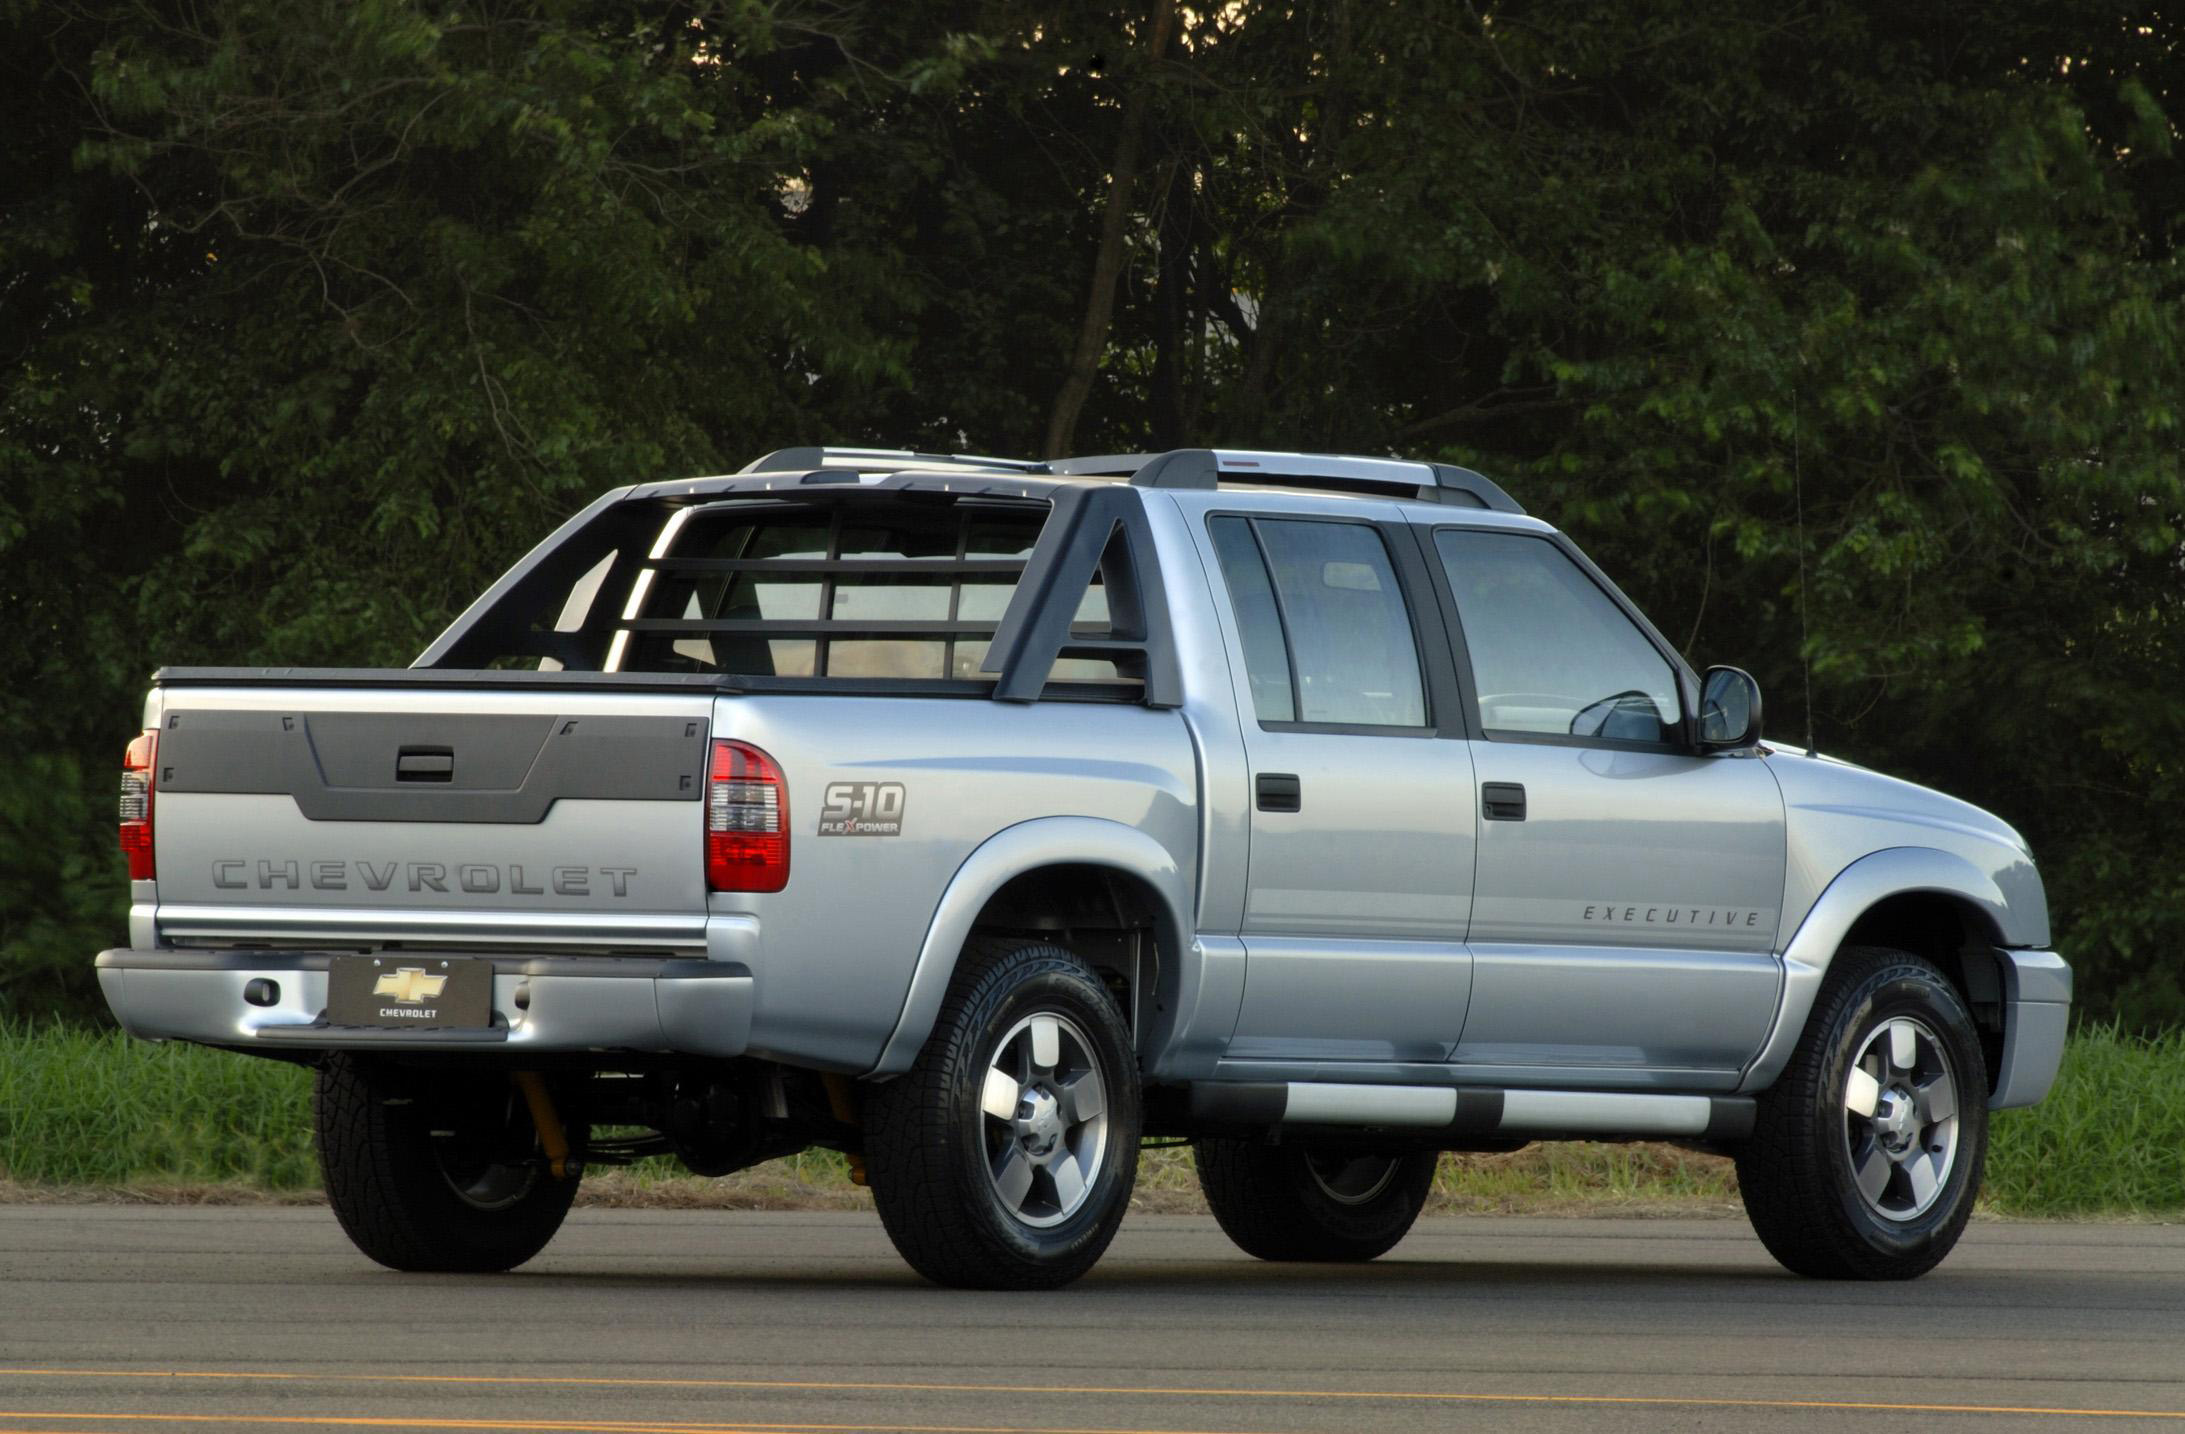 chevrolet s10 executive flexpower cabine dupla 2009 all the cars. Black Bedroom Furniture Sets. Home Design Ideas